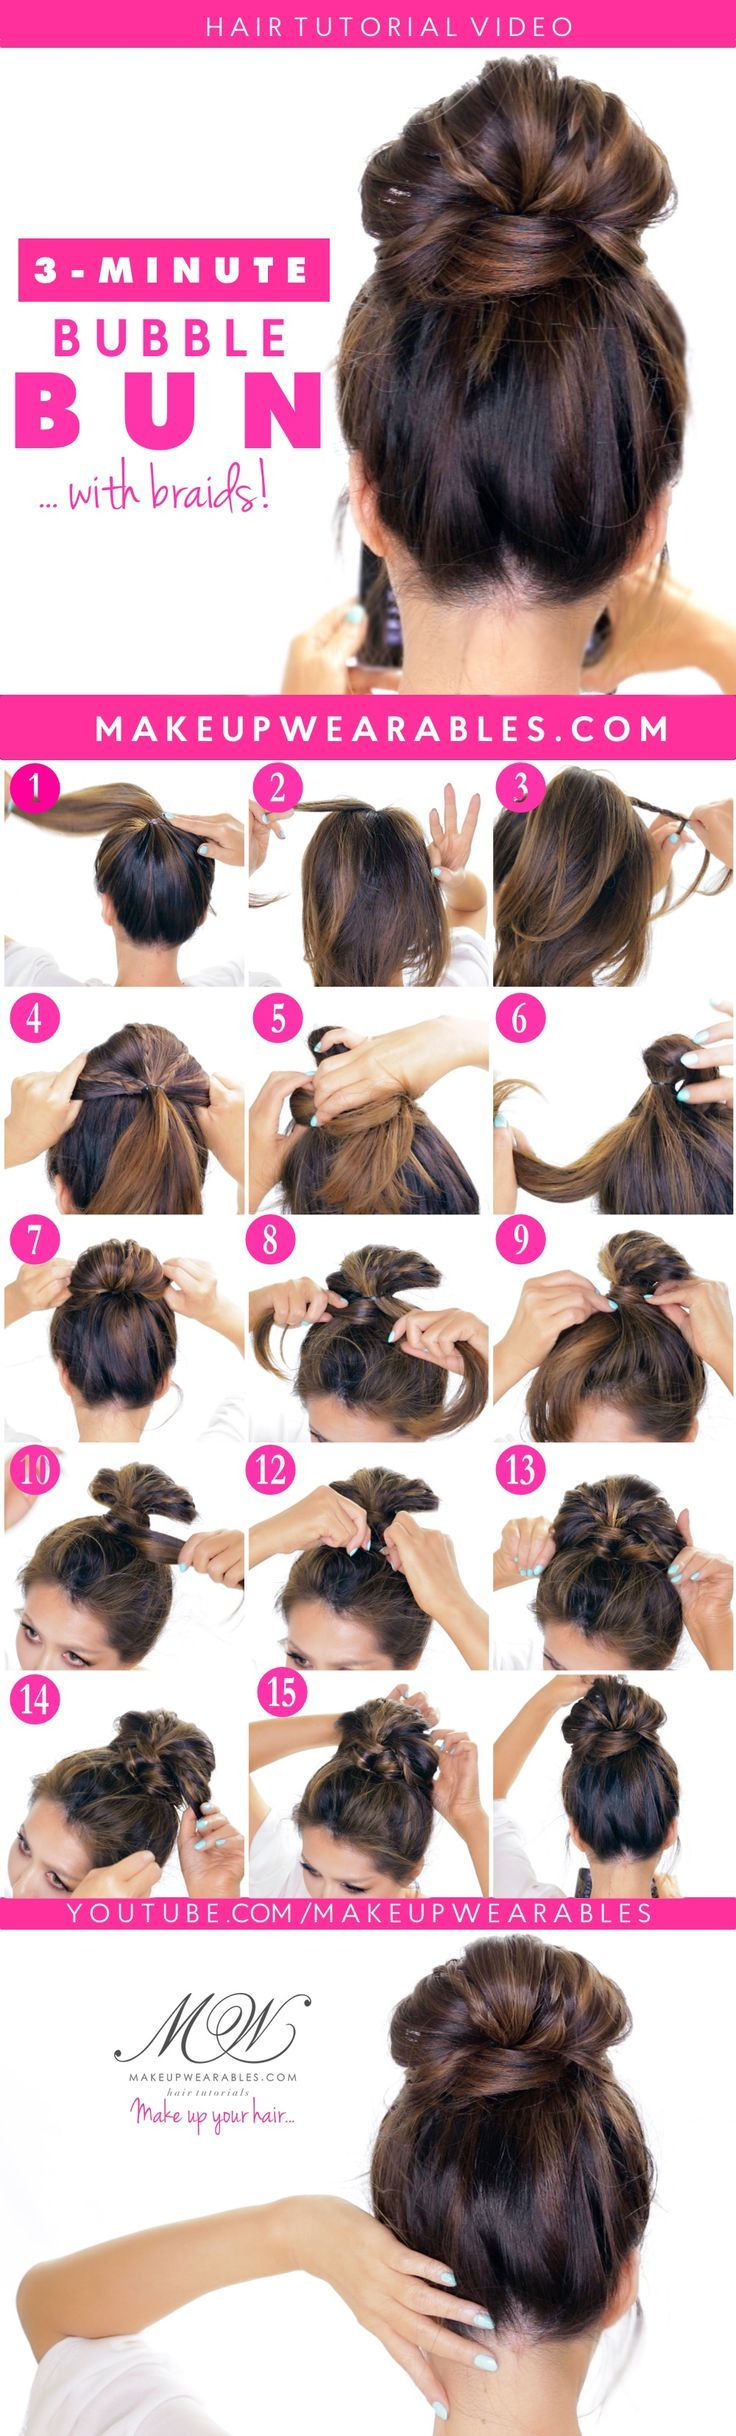 Easy Bubble Bun With Braids Cute Updo Hairstyles Hair Style